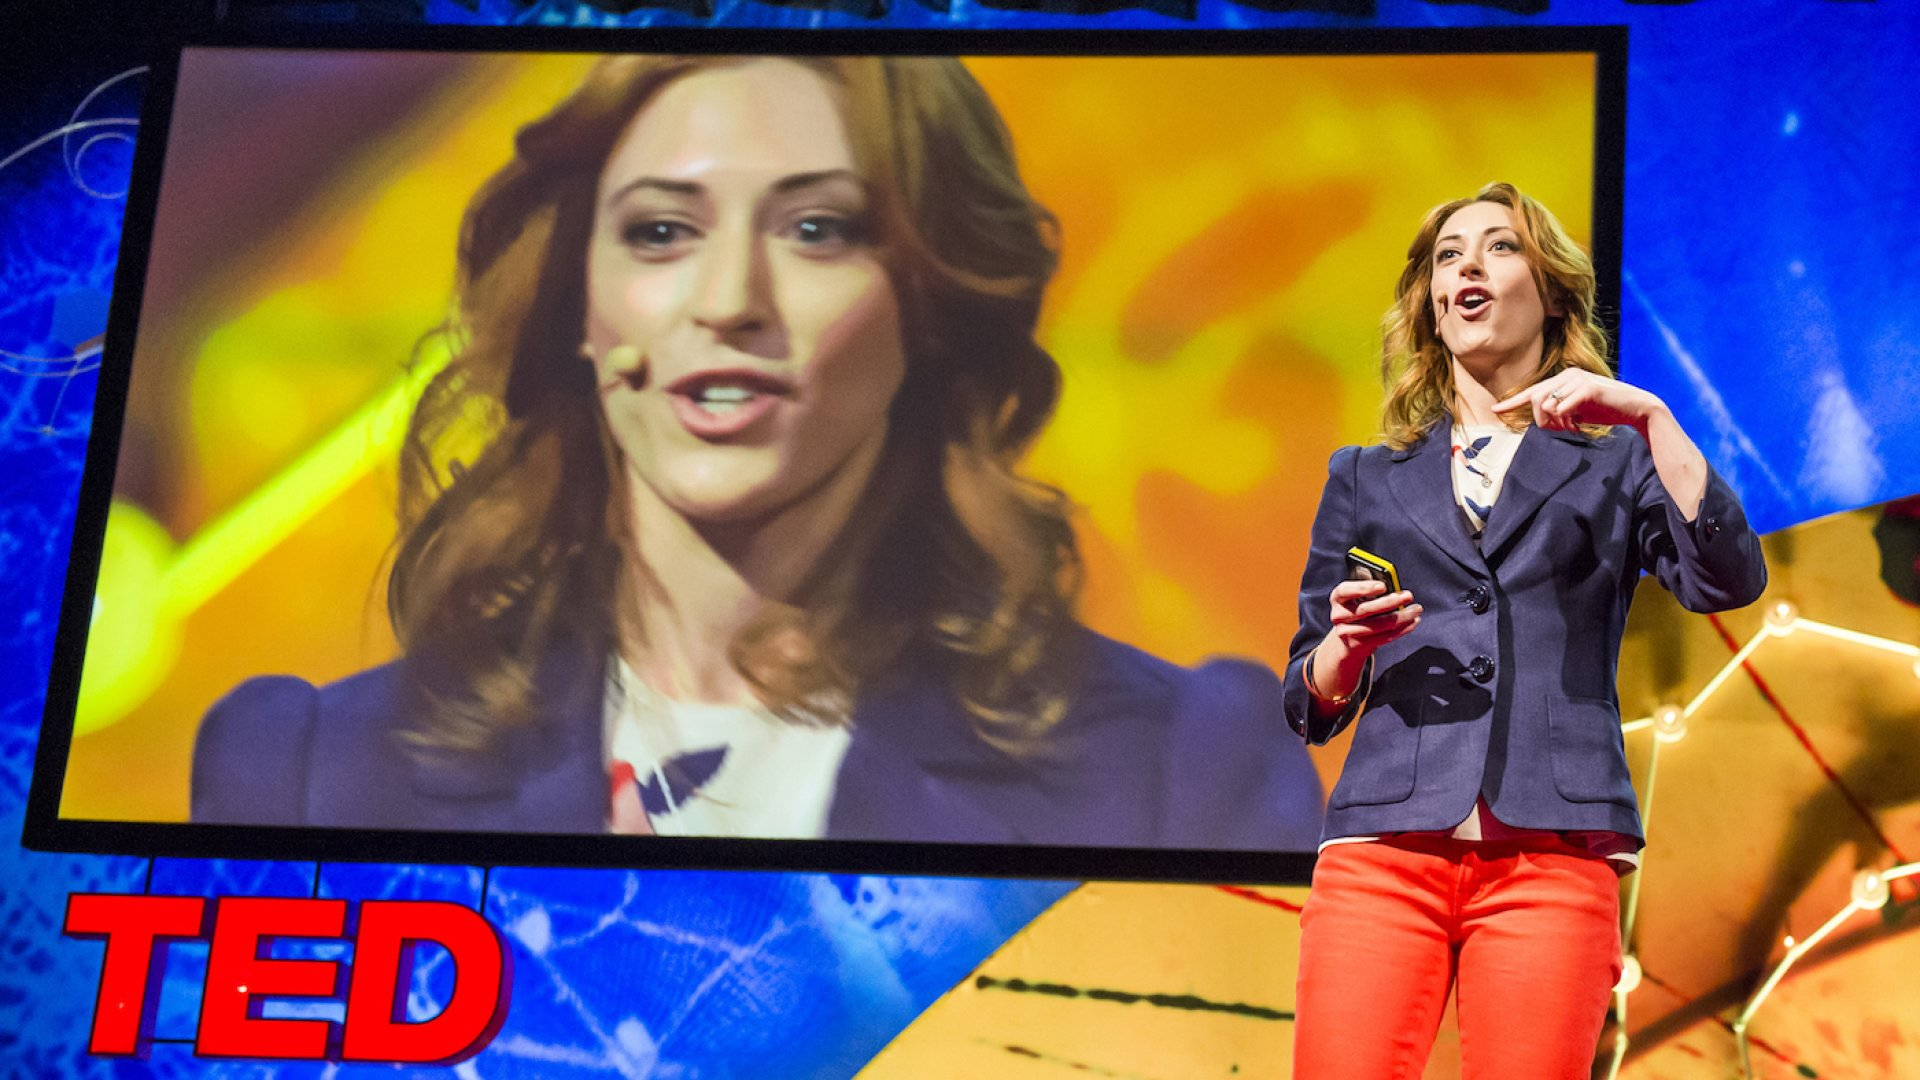 TED speaker and health psychologist Kelly McGonigal.